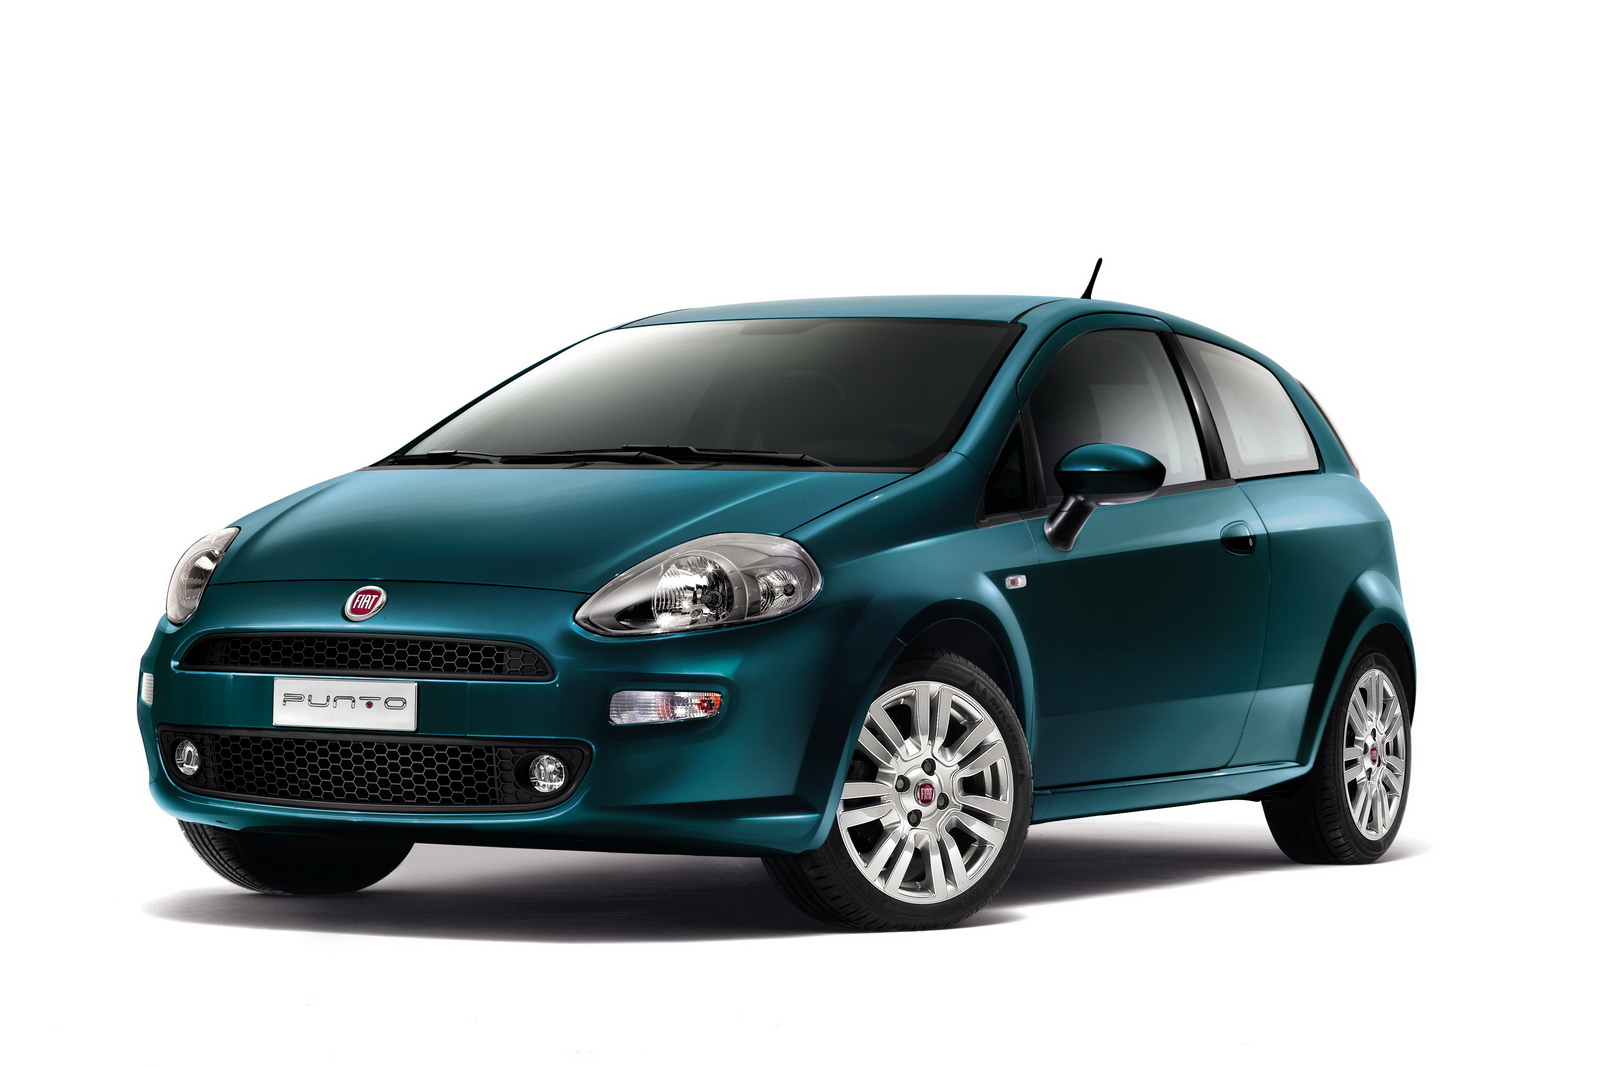 2012 FIAT PUNTO 2 2012 Nuova Panda – More Fuel Economic with Updated Drive Train Package